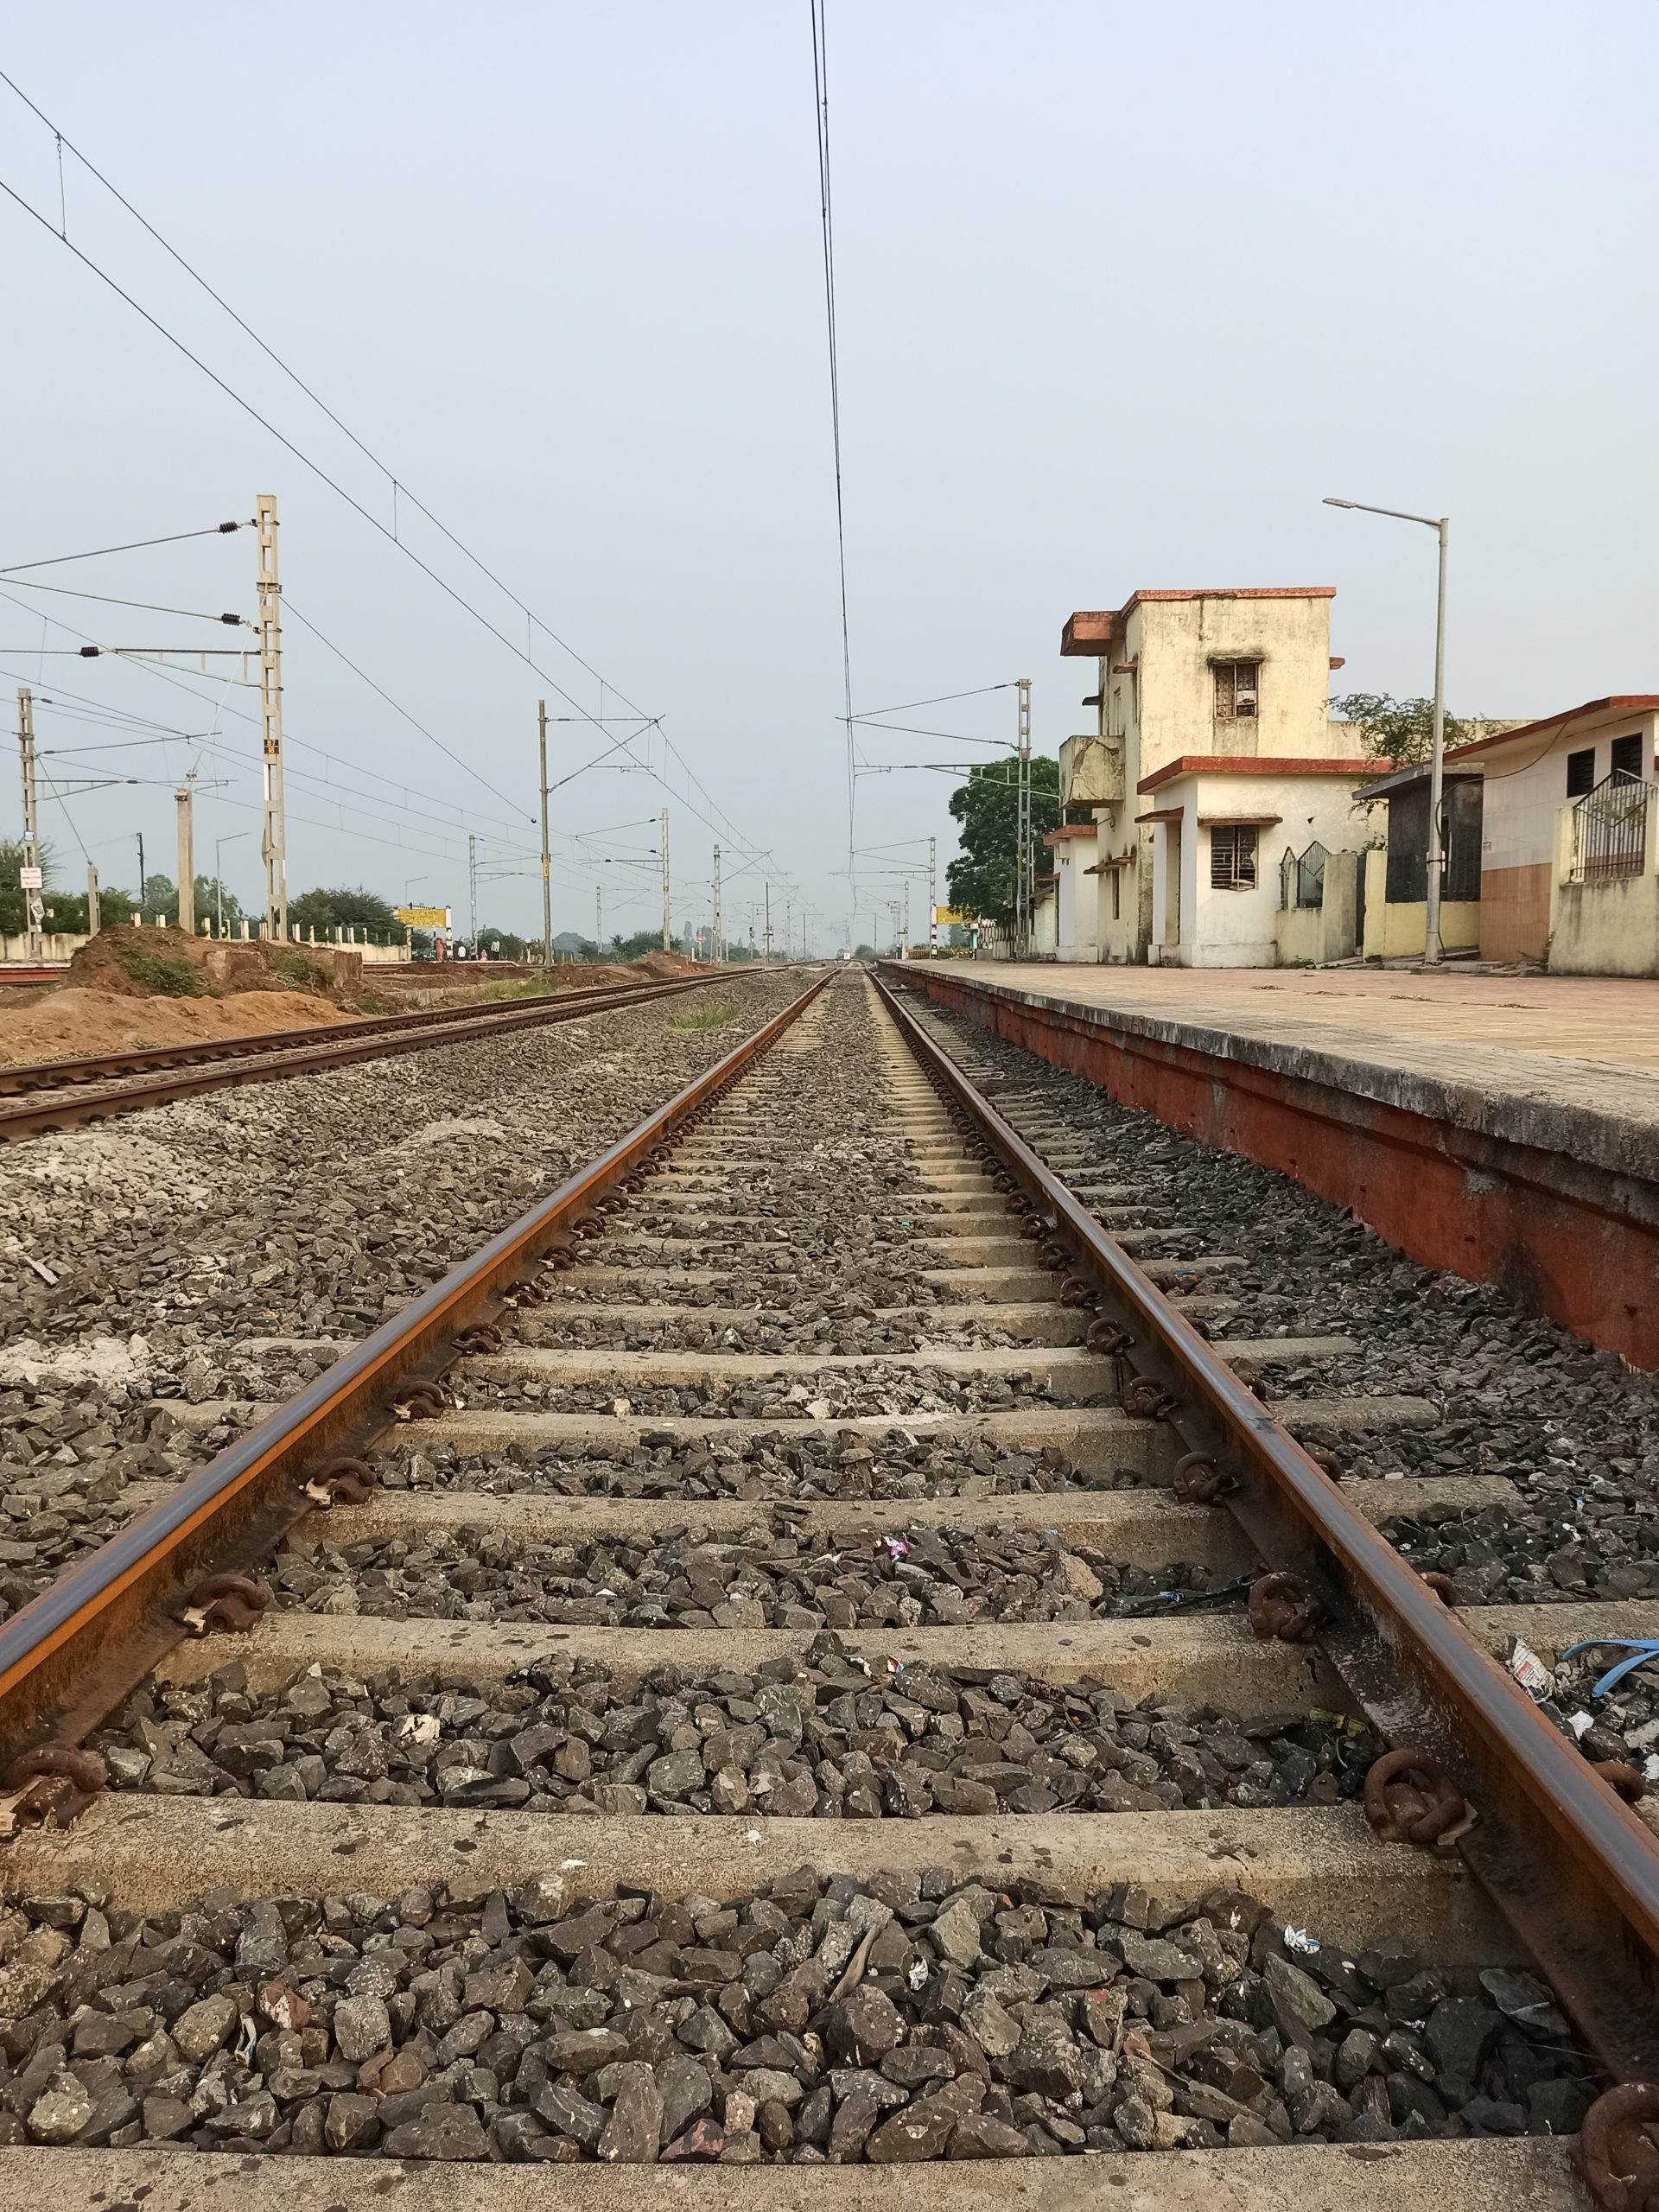 Railway station view